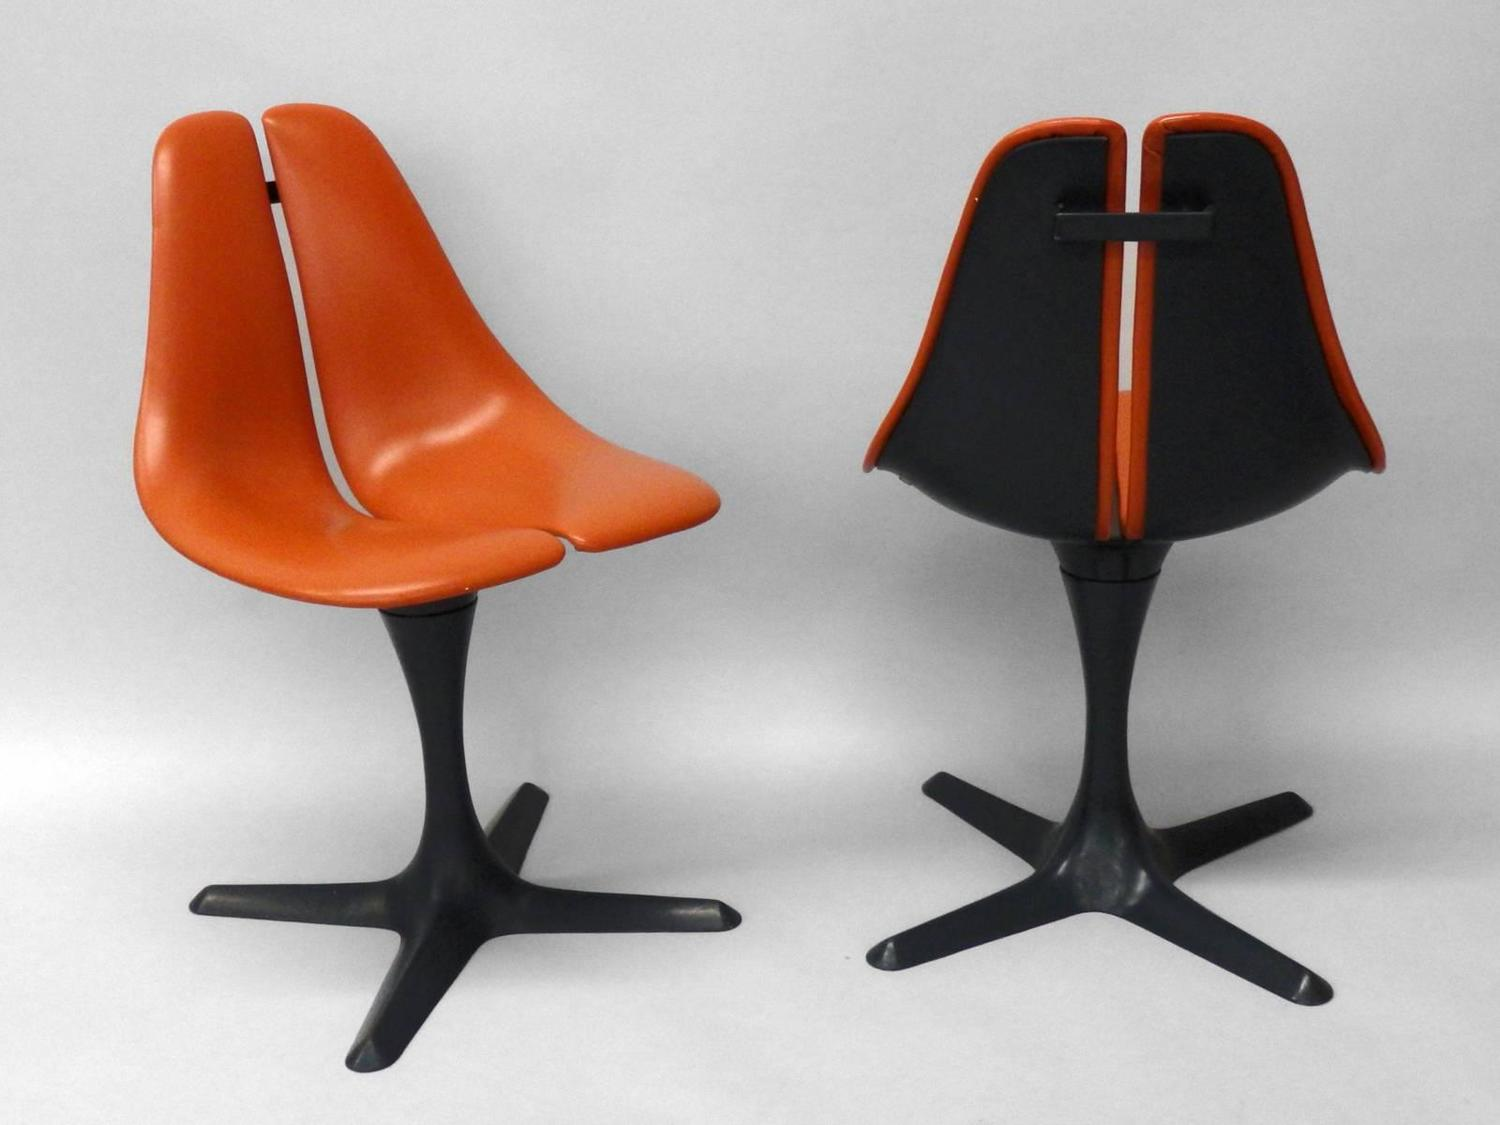 Pair of maurice burke tulip style pedestal chairs for sale at 1stdibs - Tulip chairs for sale ...